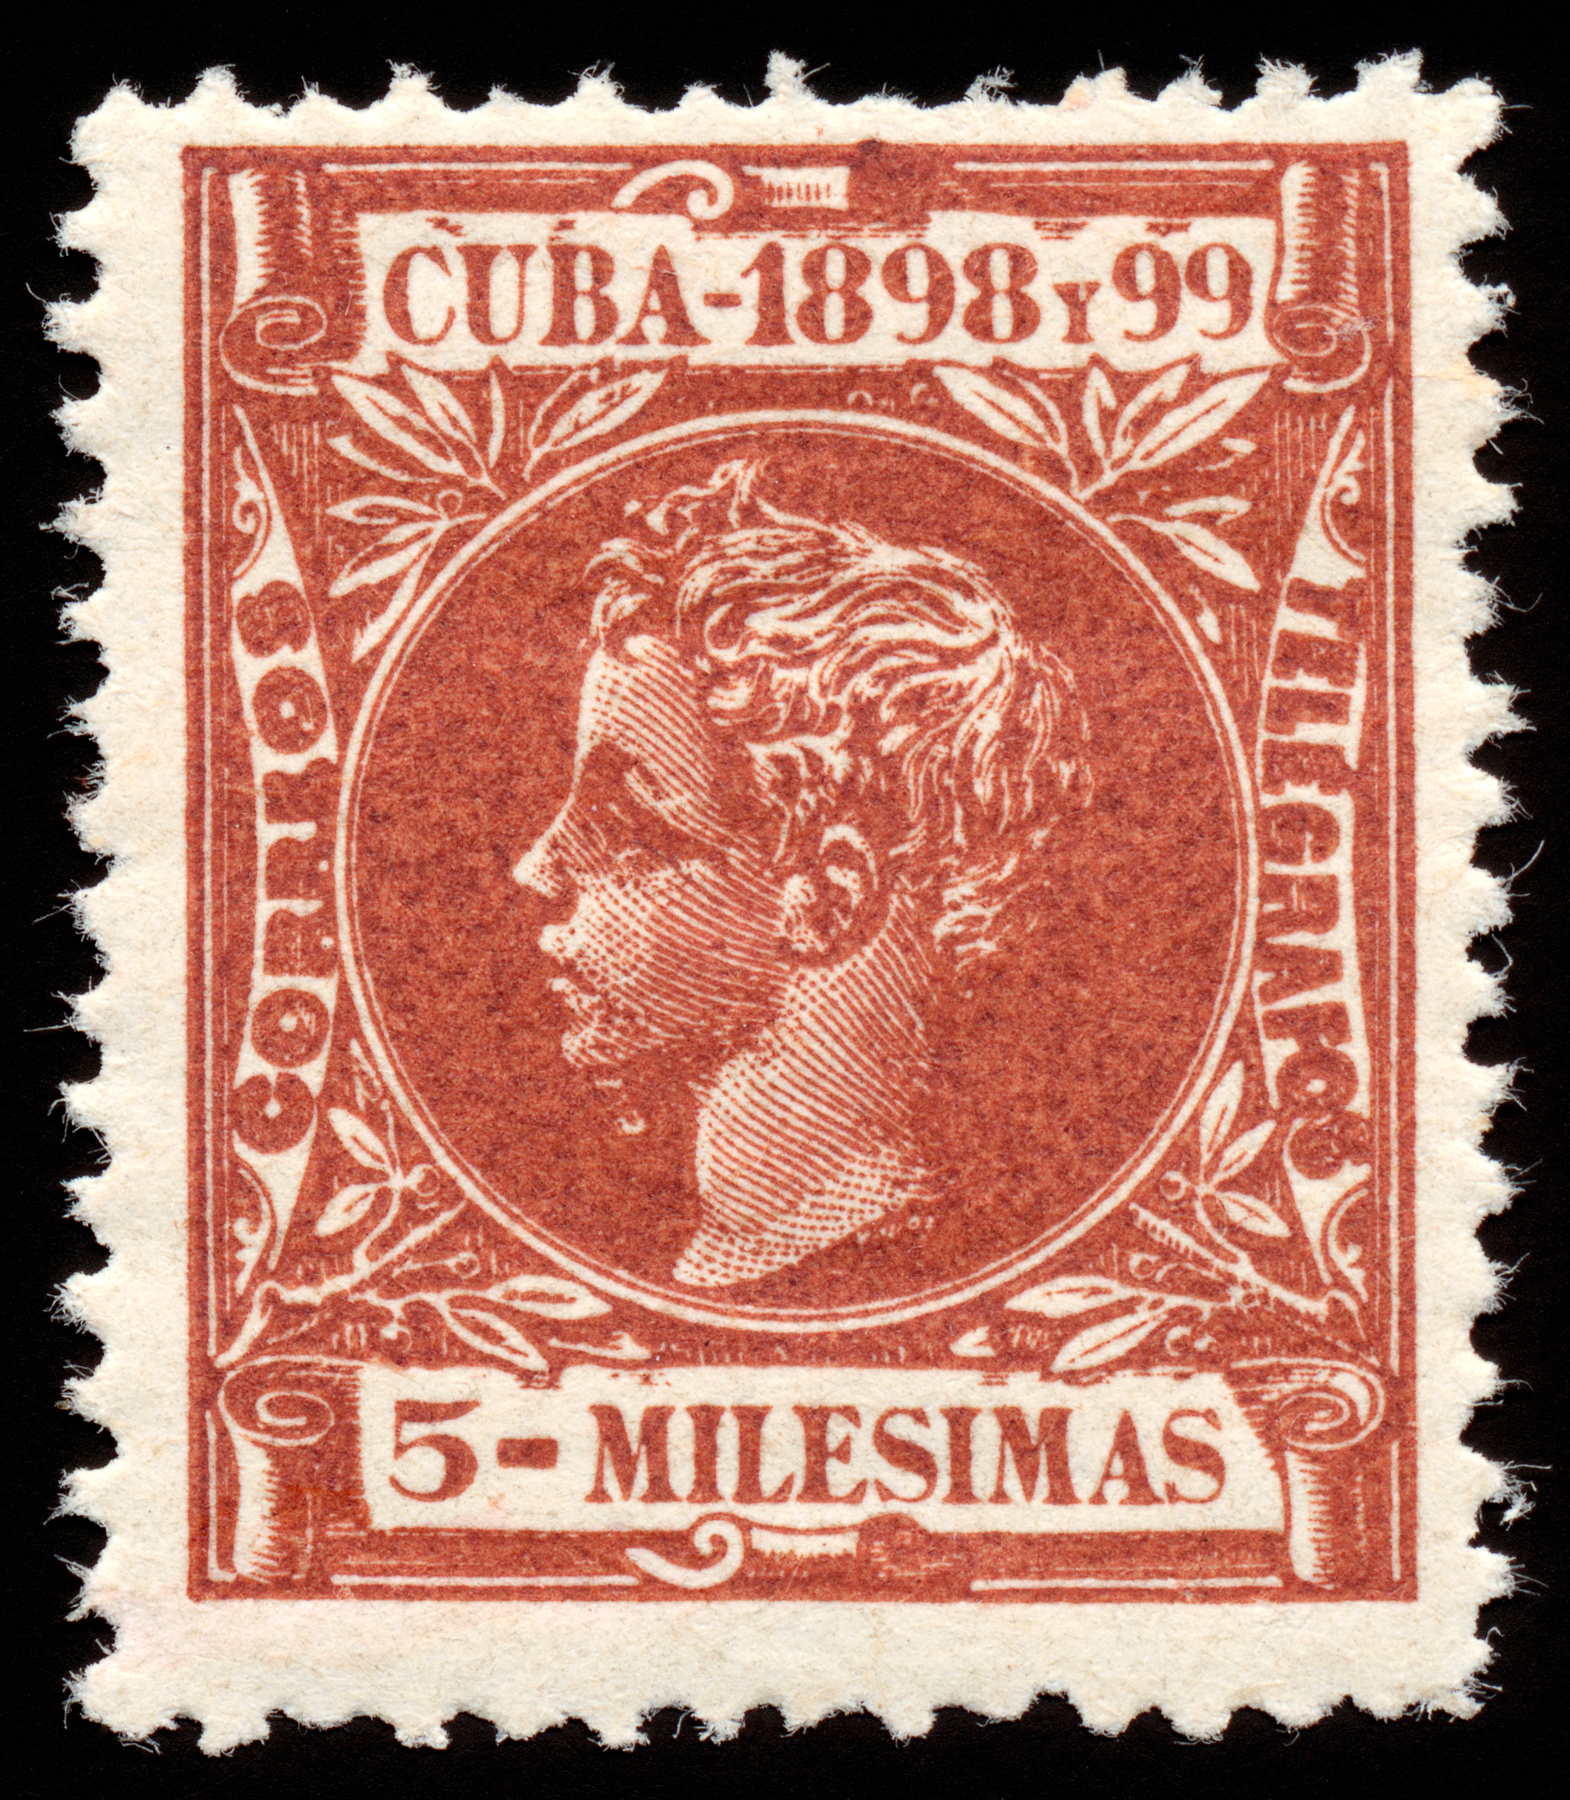 Brown king alfonso xiii stamp photo